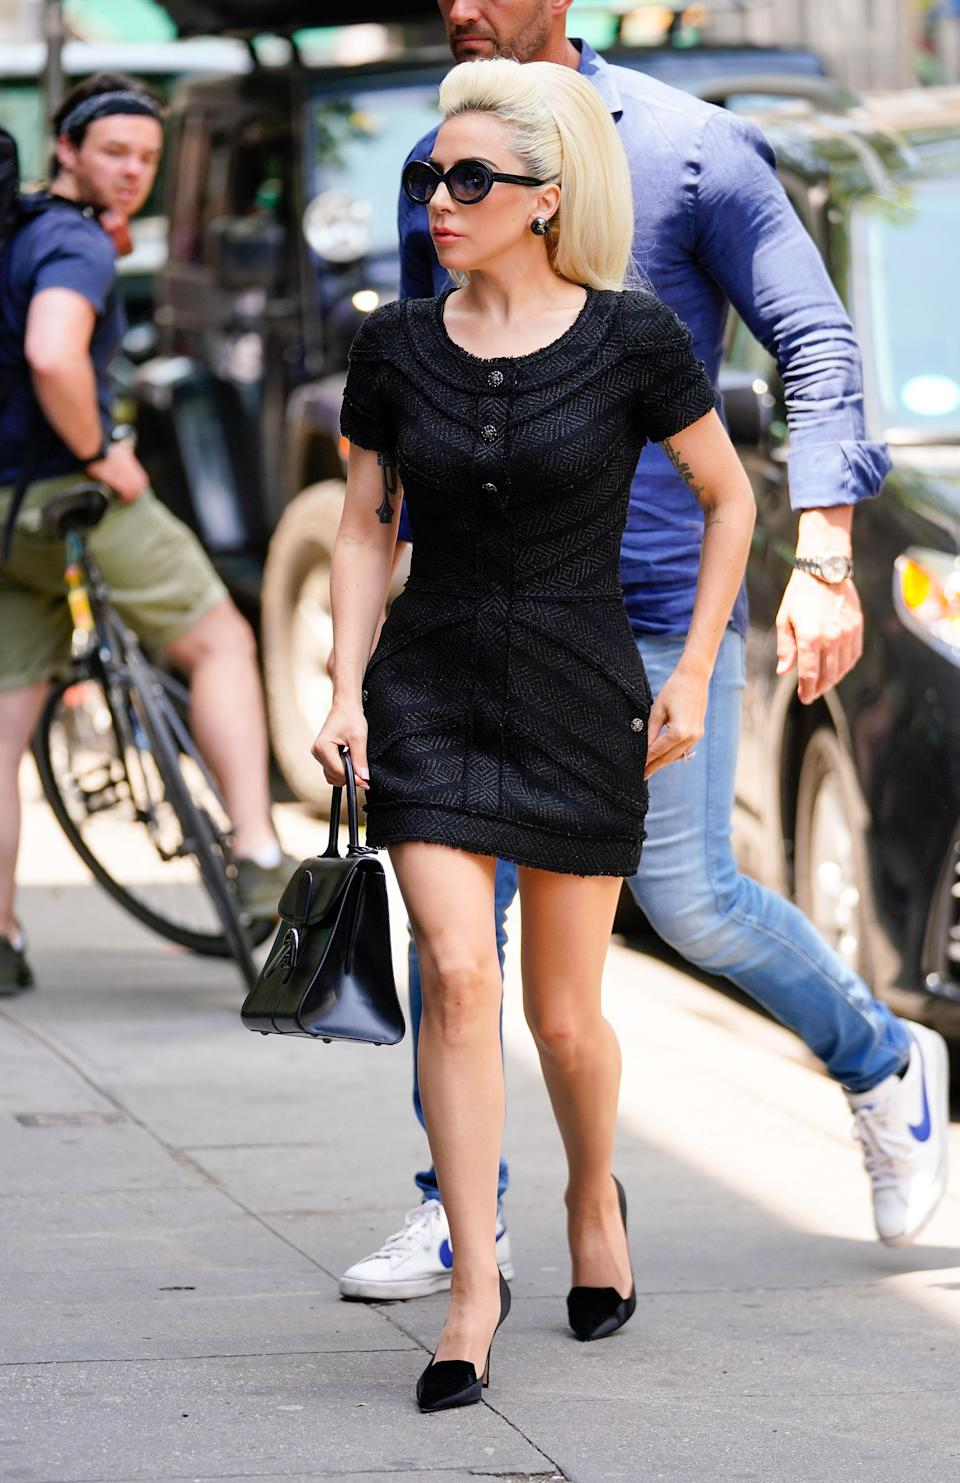 <p>The next day, she donned an all-black outfit that wouldn't look amiss during a casual stroll in Paris. [Photo: Getty] </p>